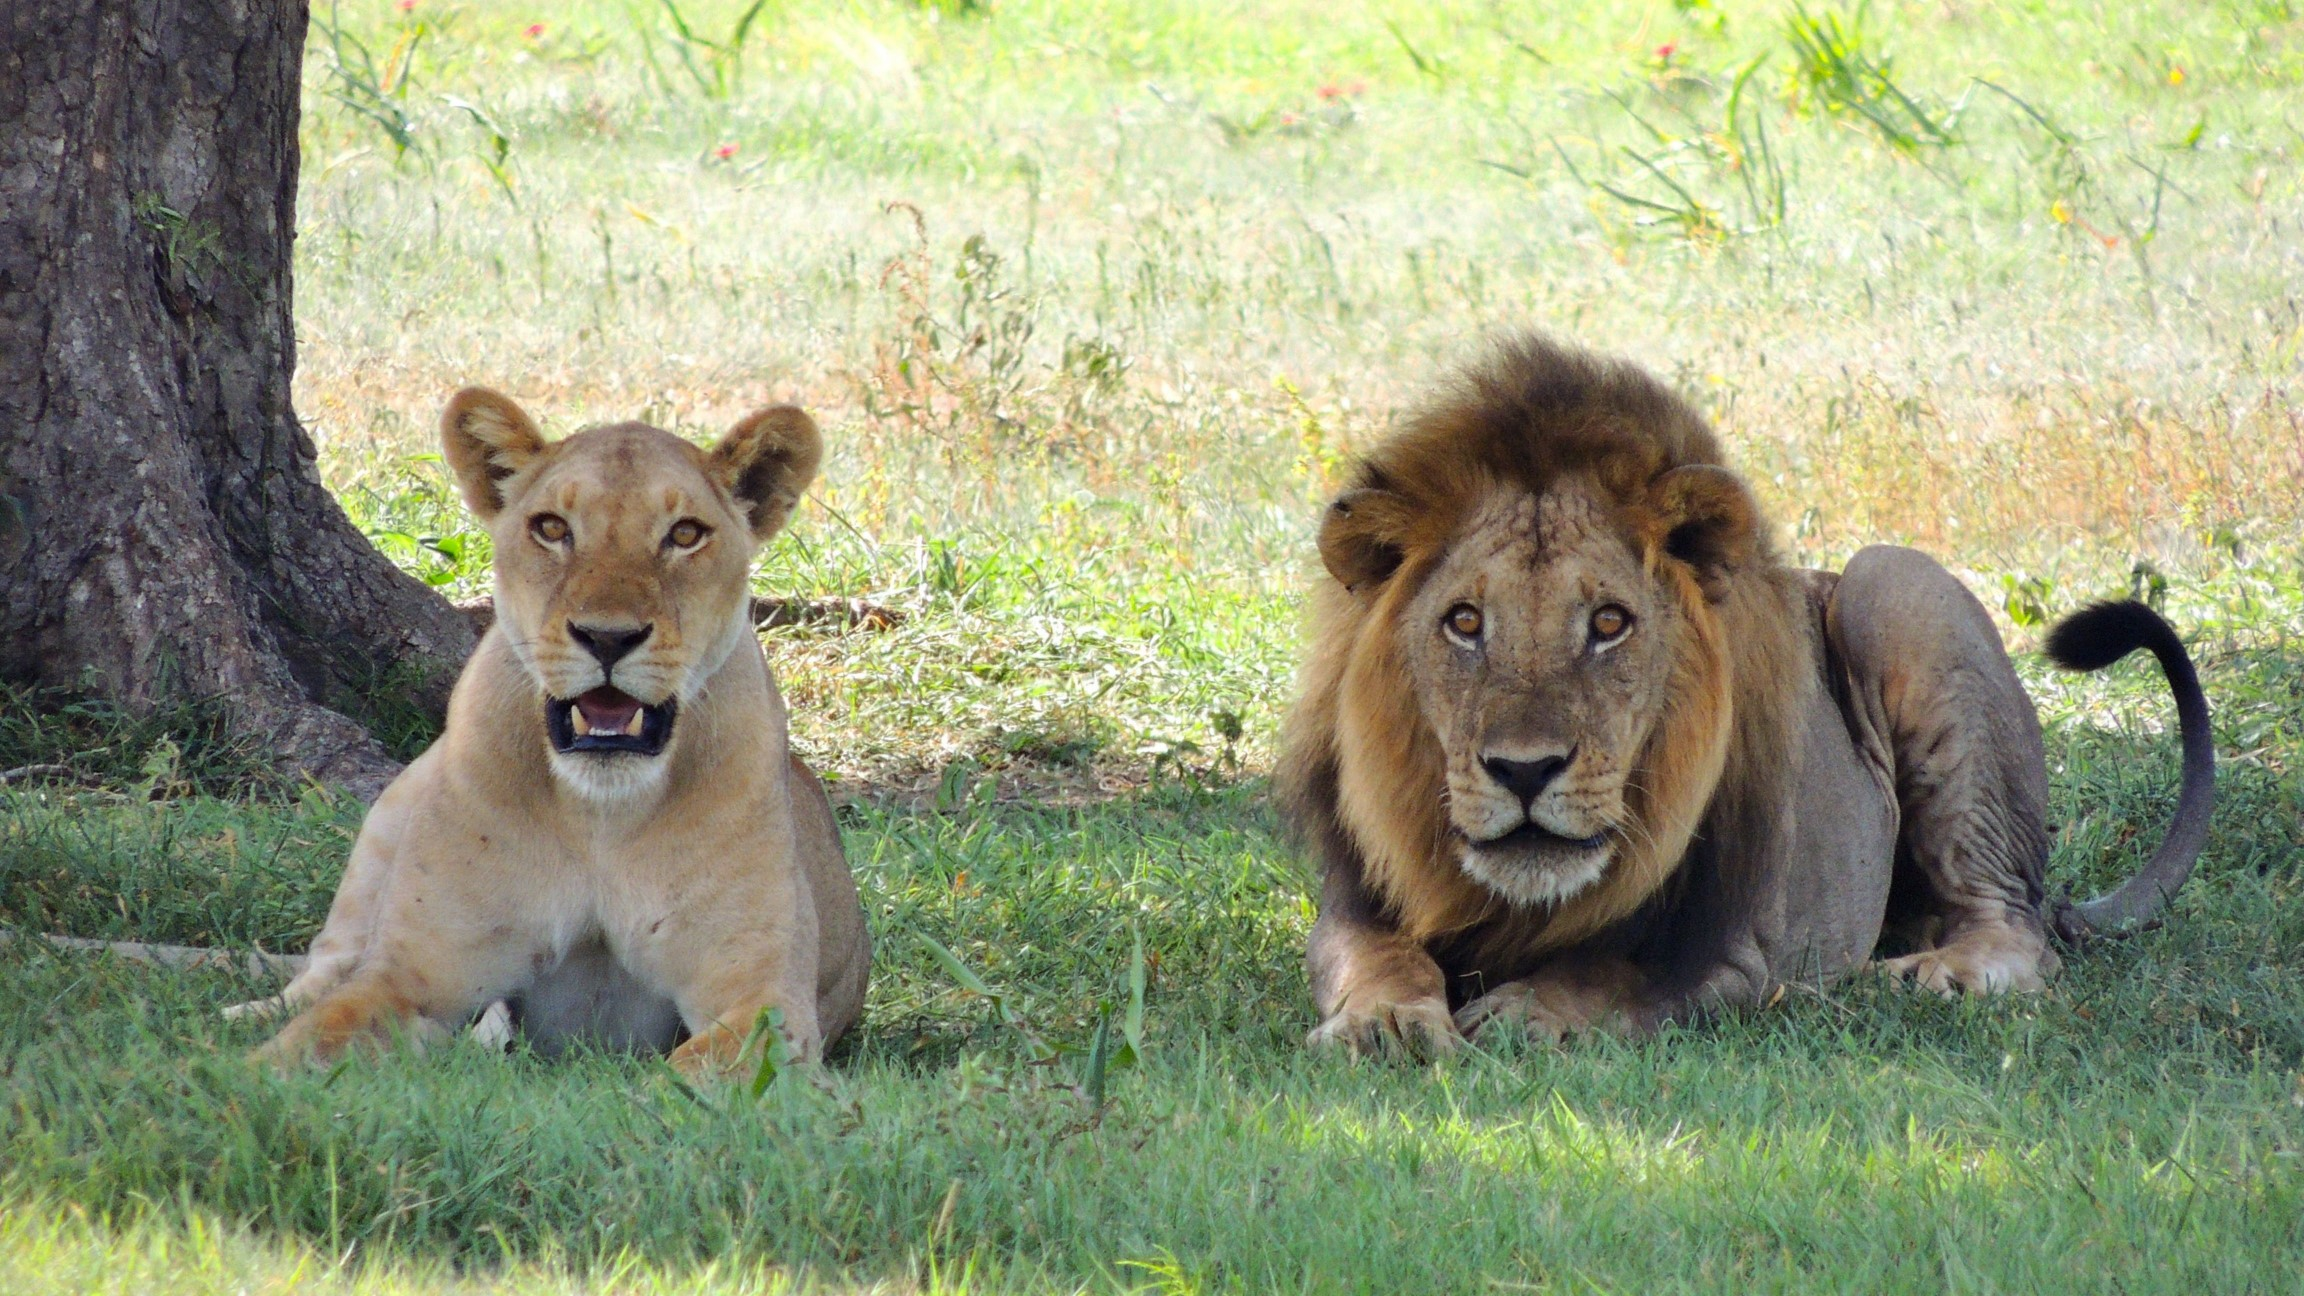 A lioness and lion in Africa